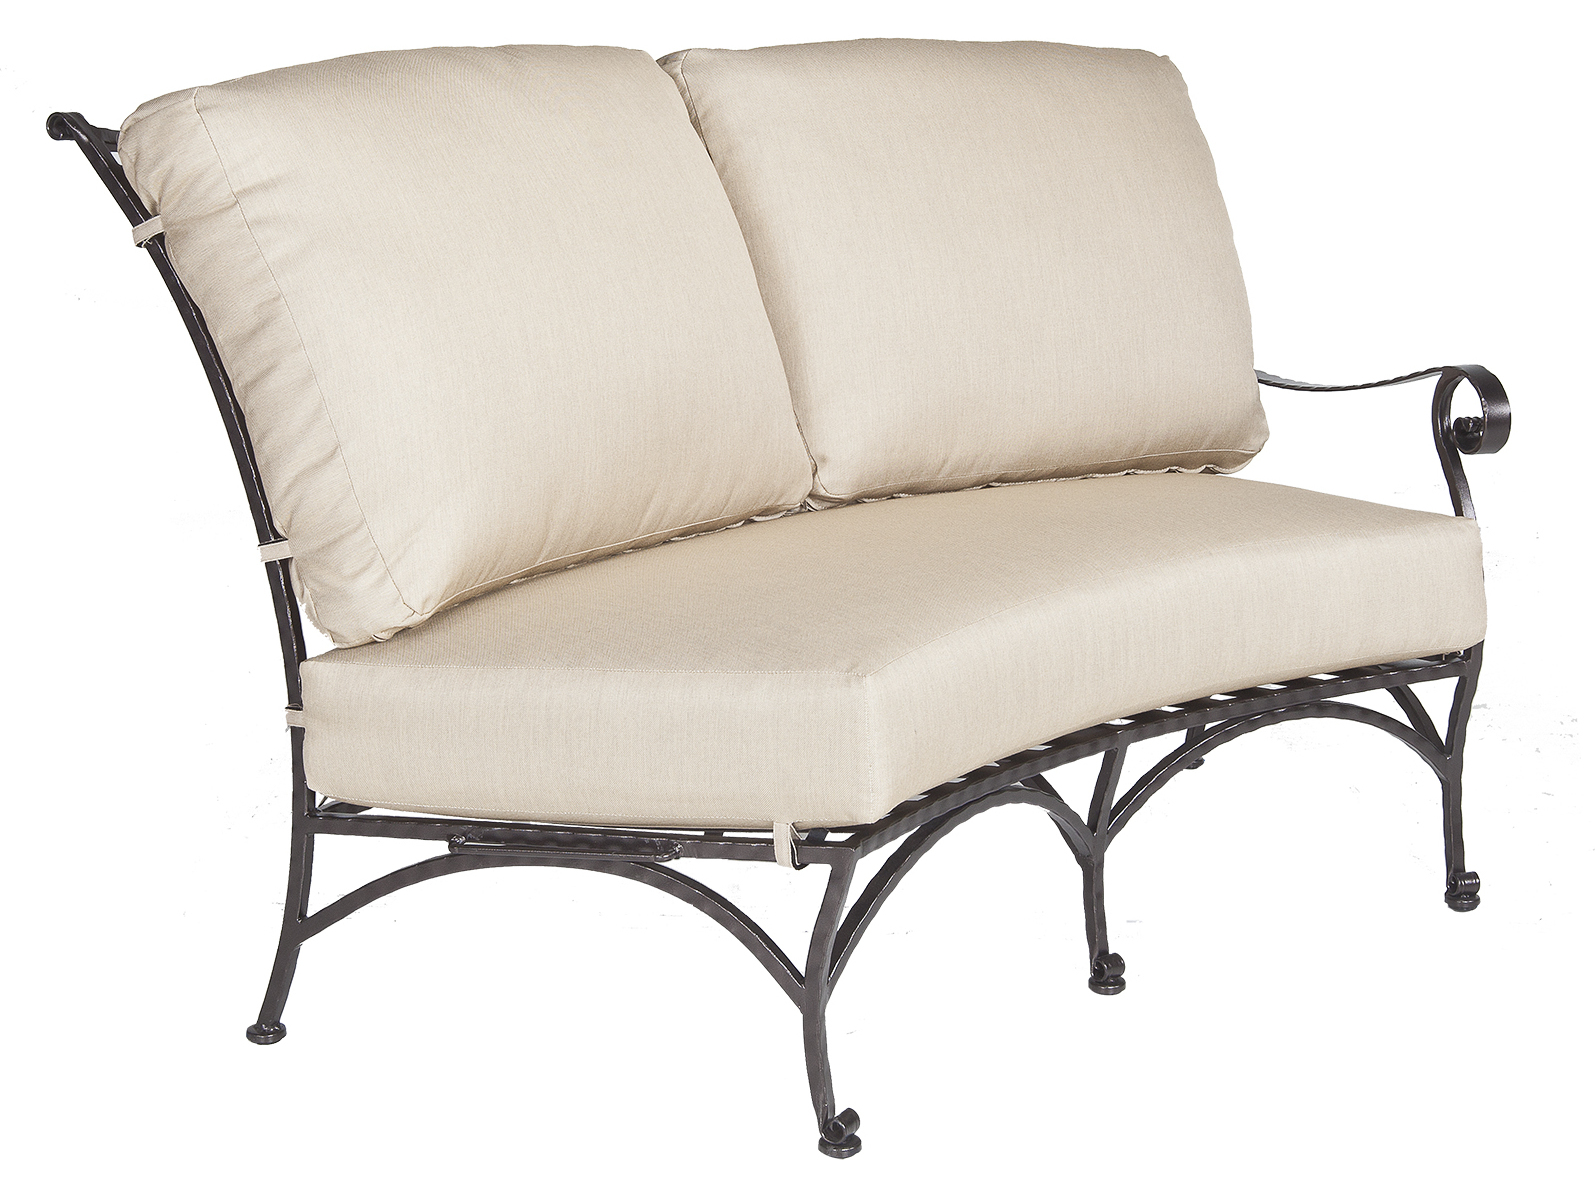 Ow Lee San Cristobal Wrought Iron Left Sectional Loveseat 692 L